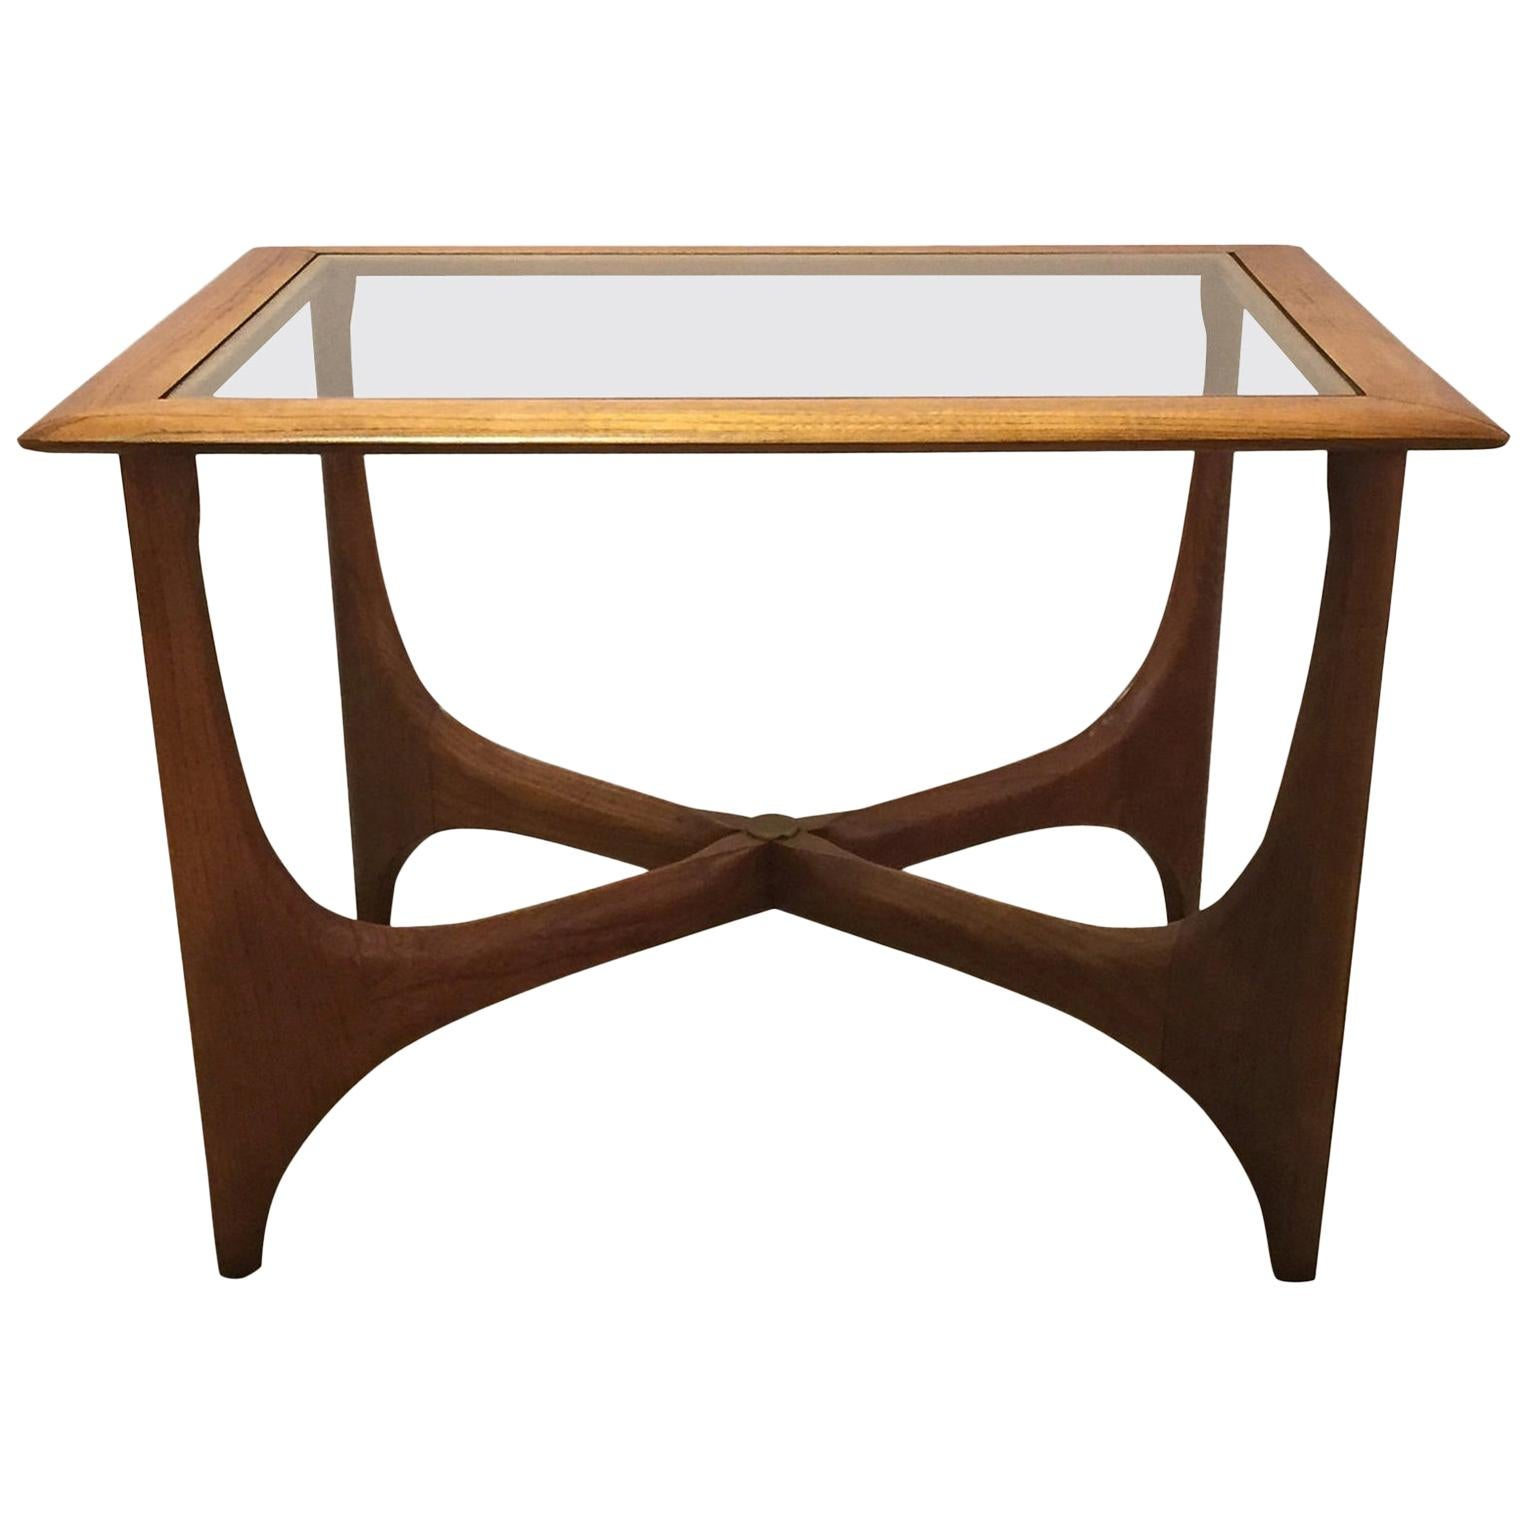 Pair of Midcentury Walnut and Smoked Glass End Tables with Rectangular Tops